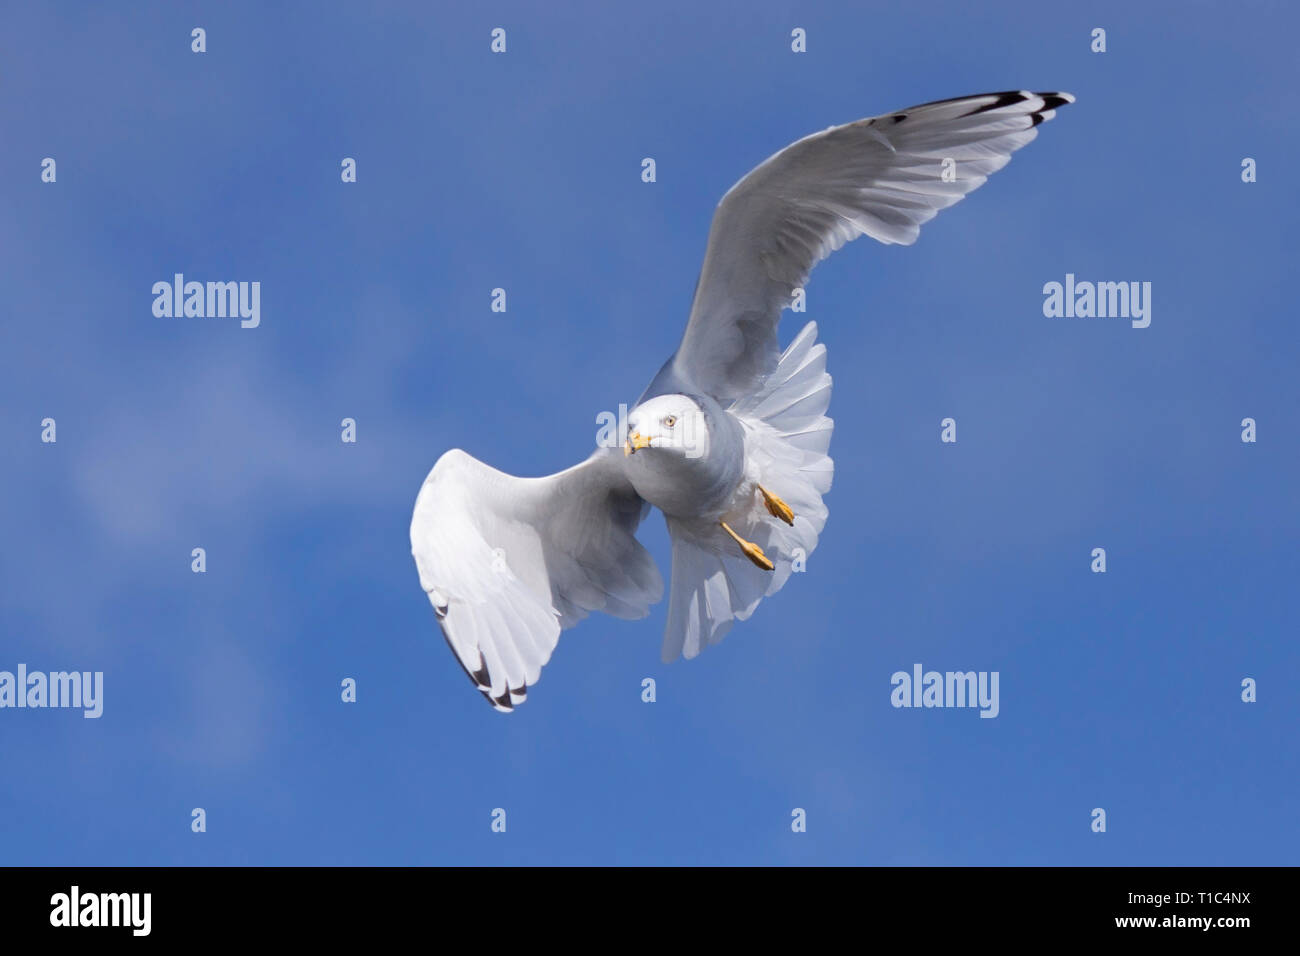 A ring-billed gull folds and curves its wings to ride the wind currents in the blue sky. Stock Photo